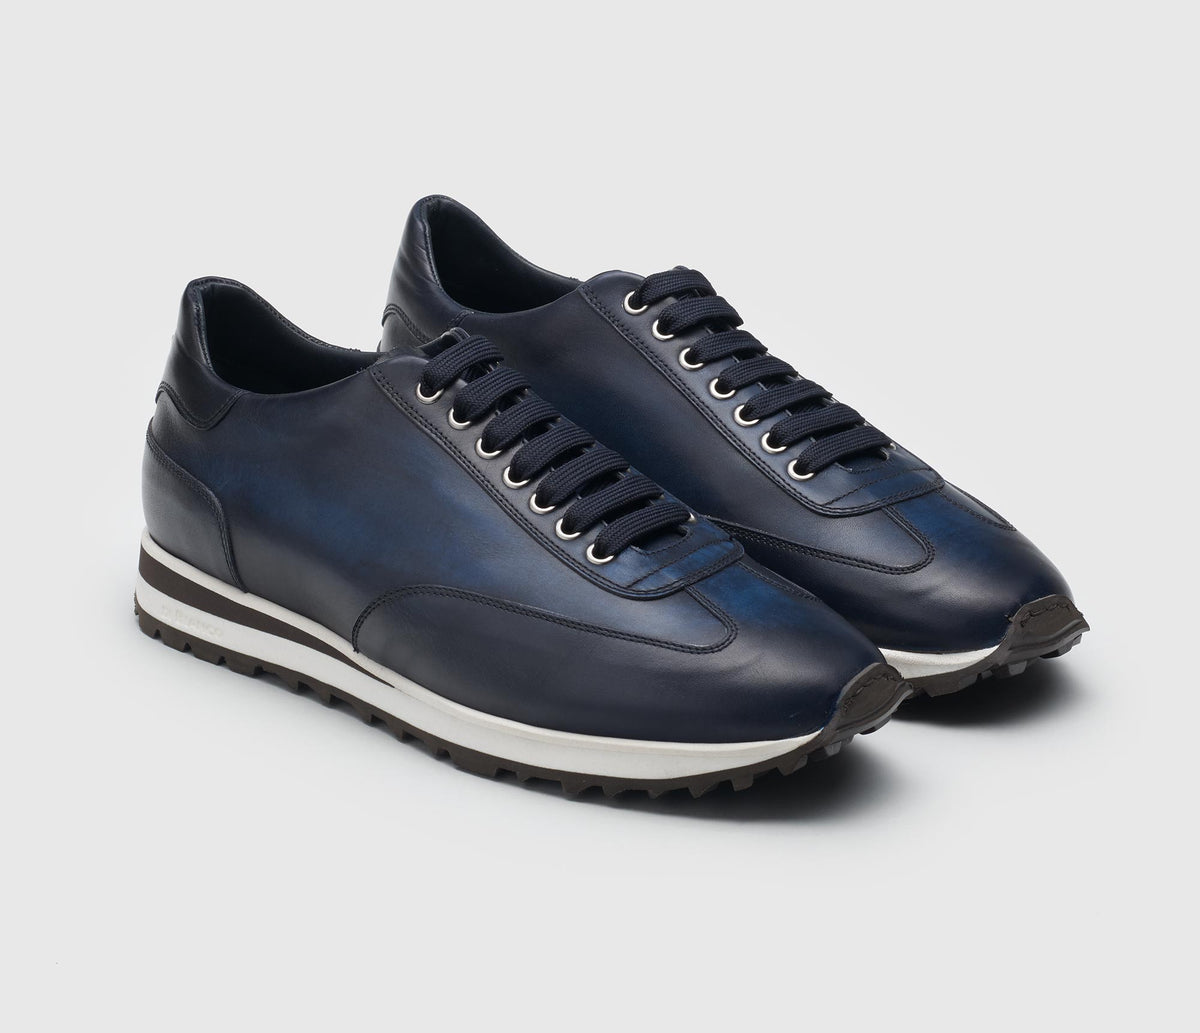 The Trieste Navy Leather Sneakers for Men